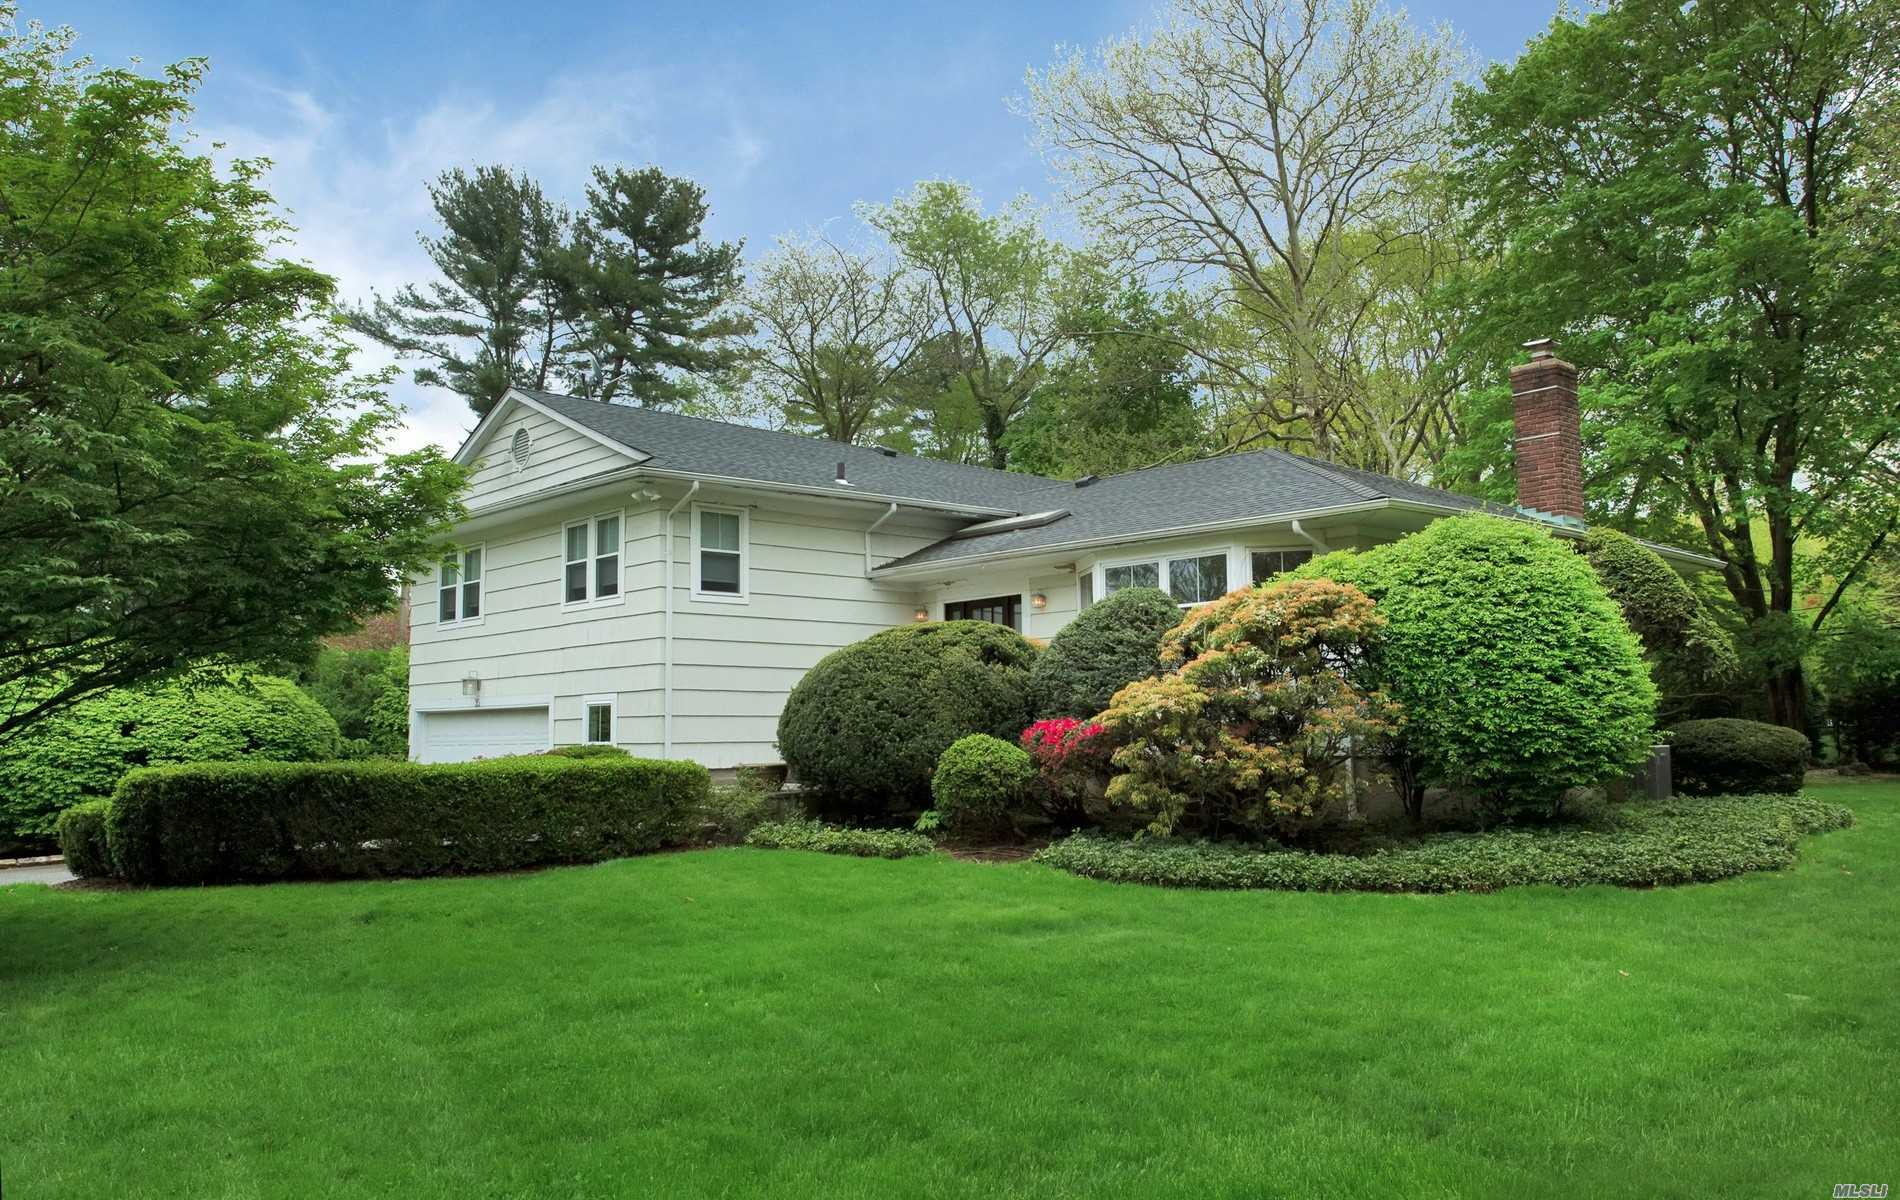 Fabulous location in East Hills. This home offers .42 acres of lush manicured landscaping. 4 bedrooms, 3 bathrooms. Updated EIK with stainless steel appliances. Sun lit living room and dining room. Flat usable property. Fueled by gas. Includes membership to East Hills Park.